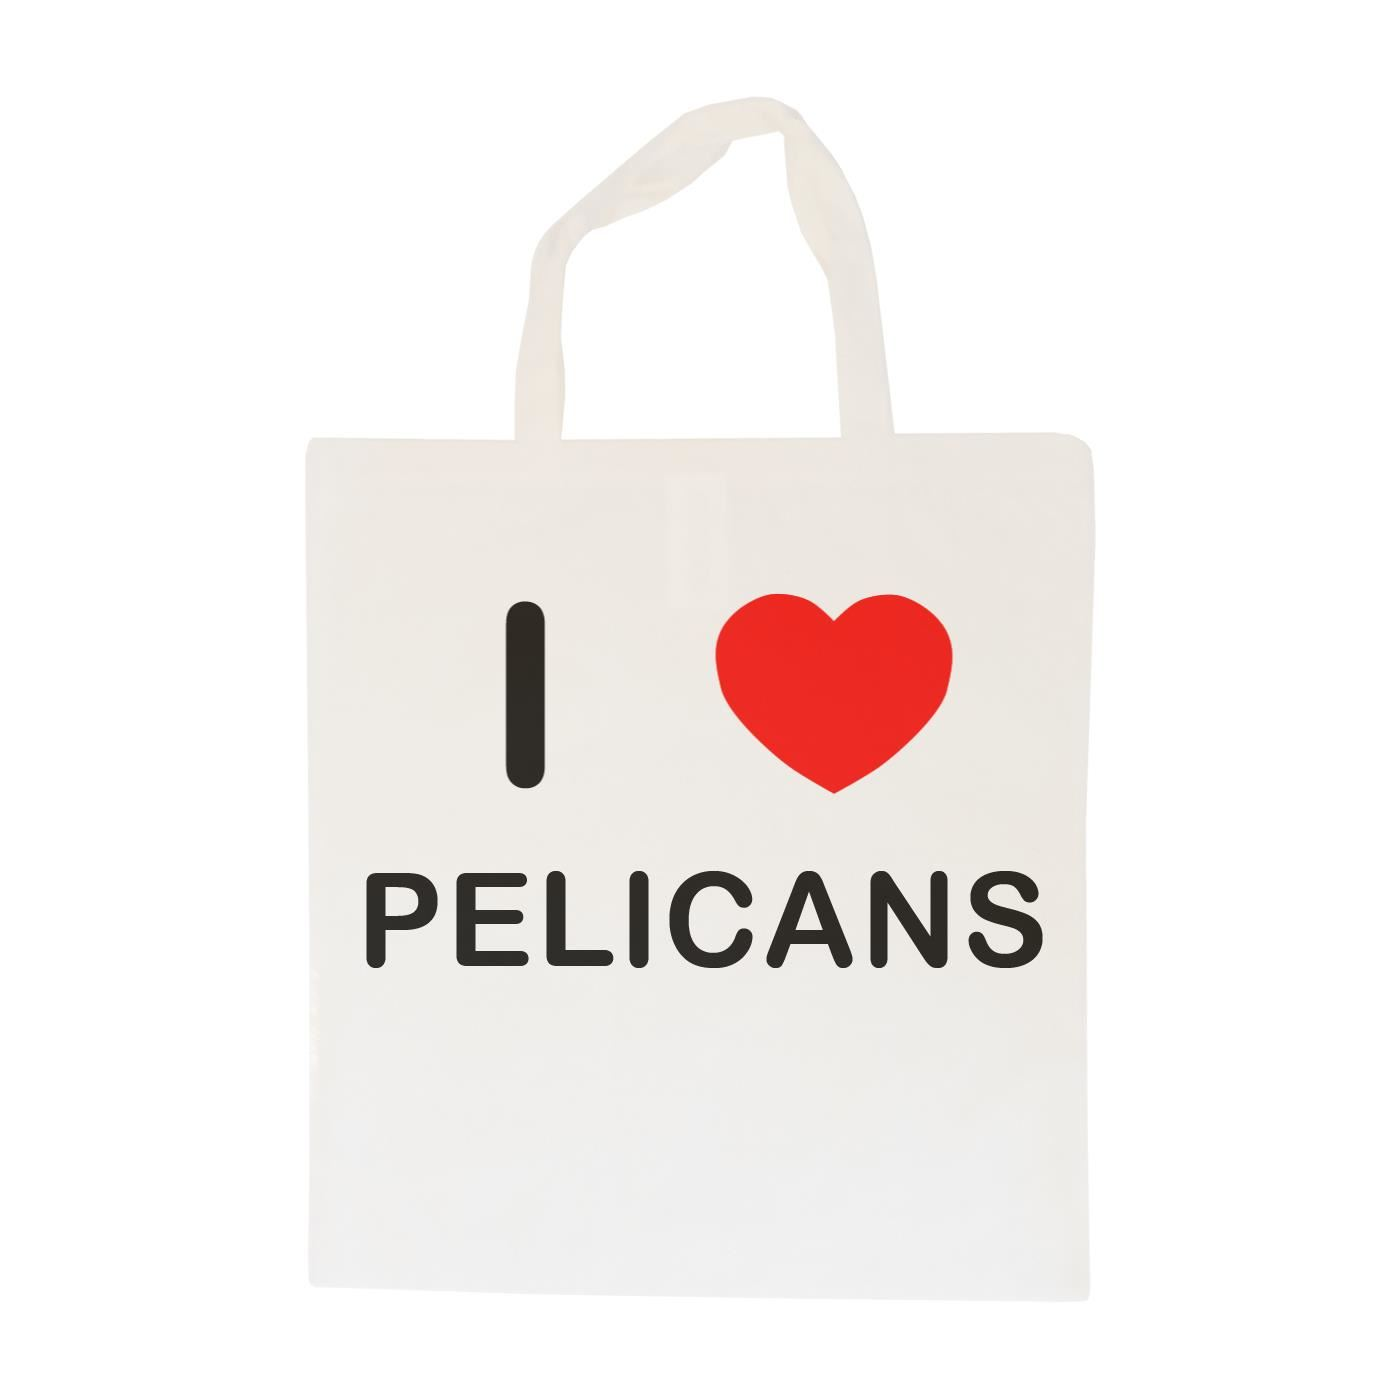 I Love Pelicans - Cotton Bag | Size choice Tote, Shopper or Sling